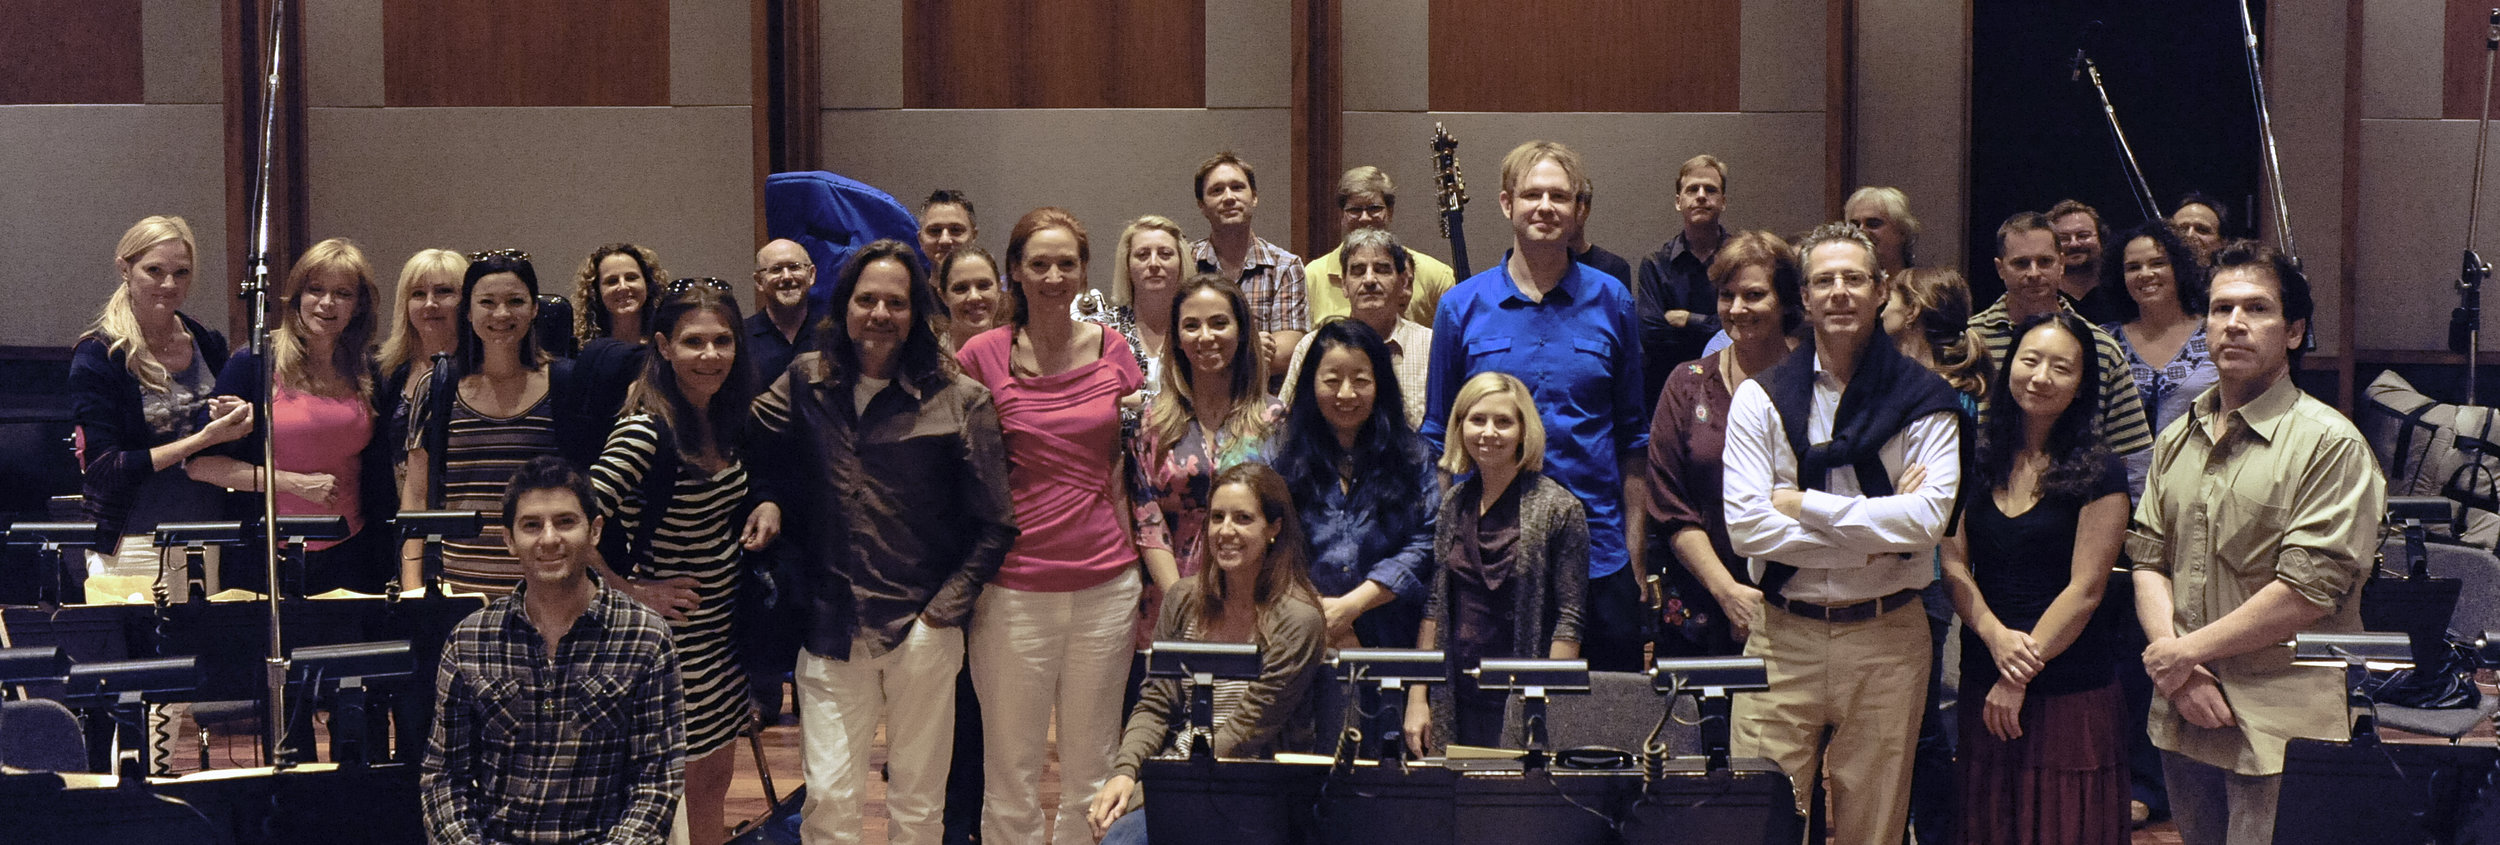 Los Angeles String Orchestra Personnel